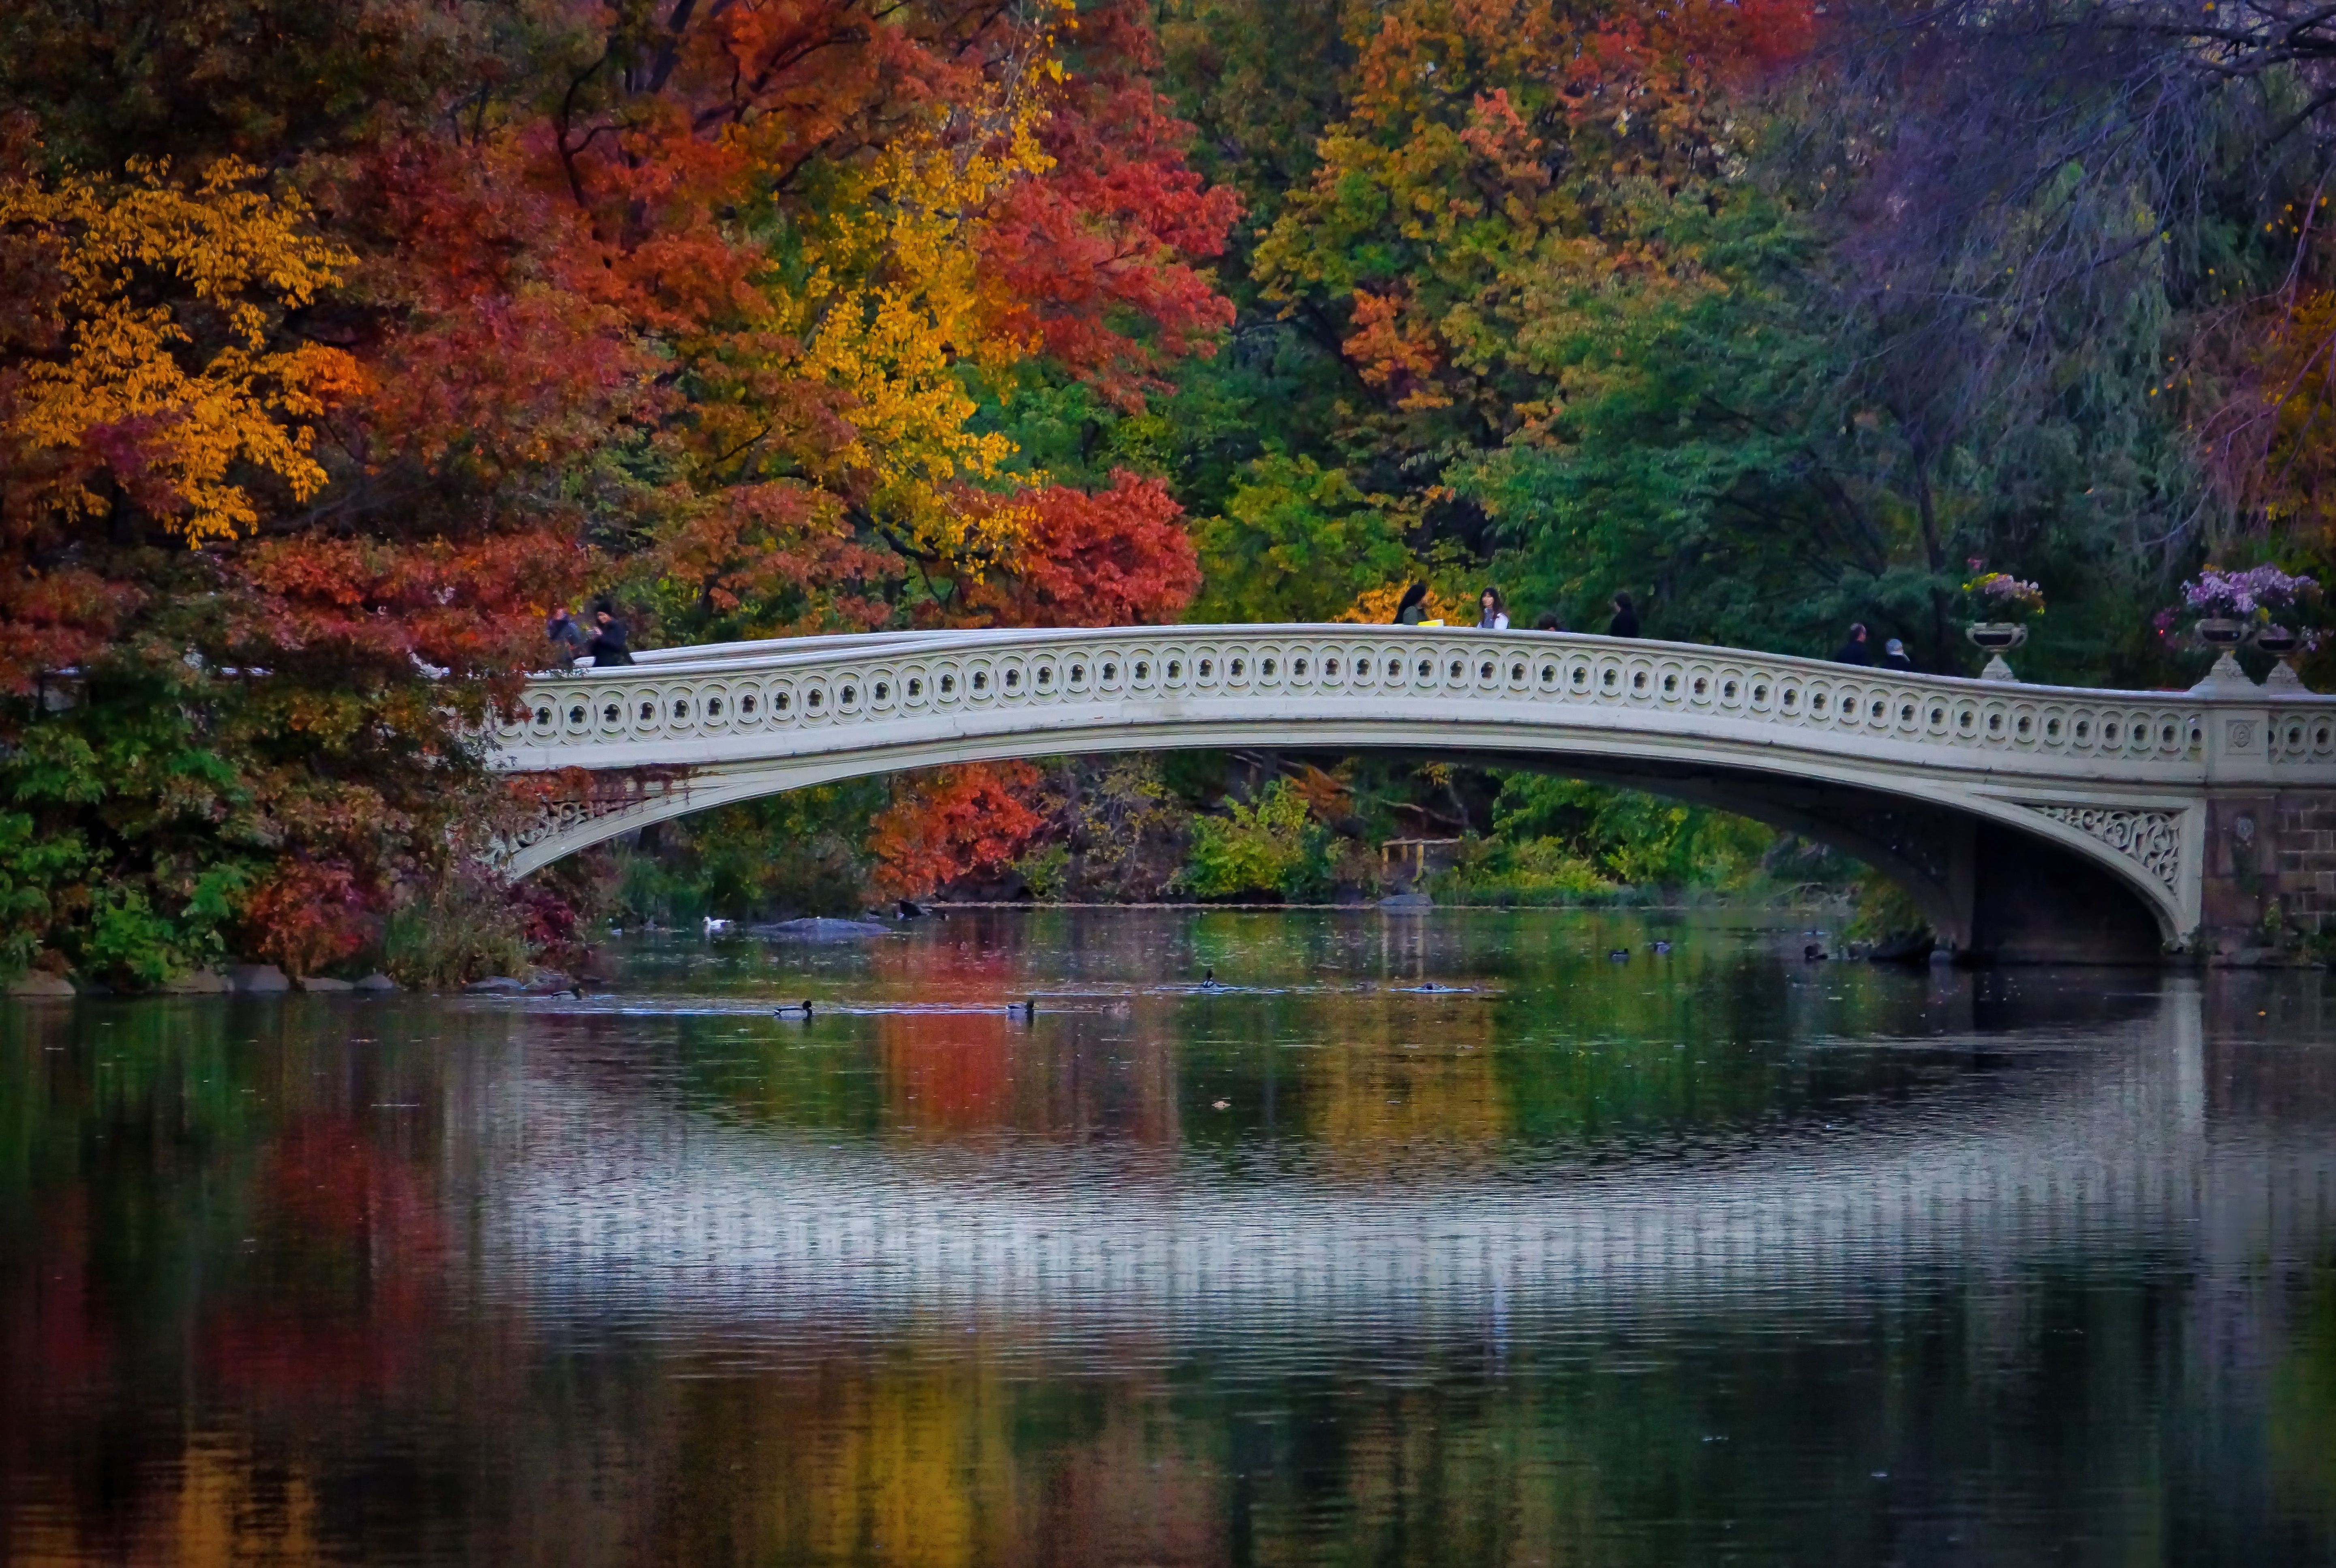 NYC Central Park Bow Bridge in the Fall